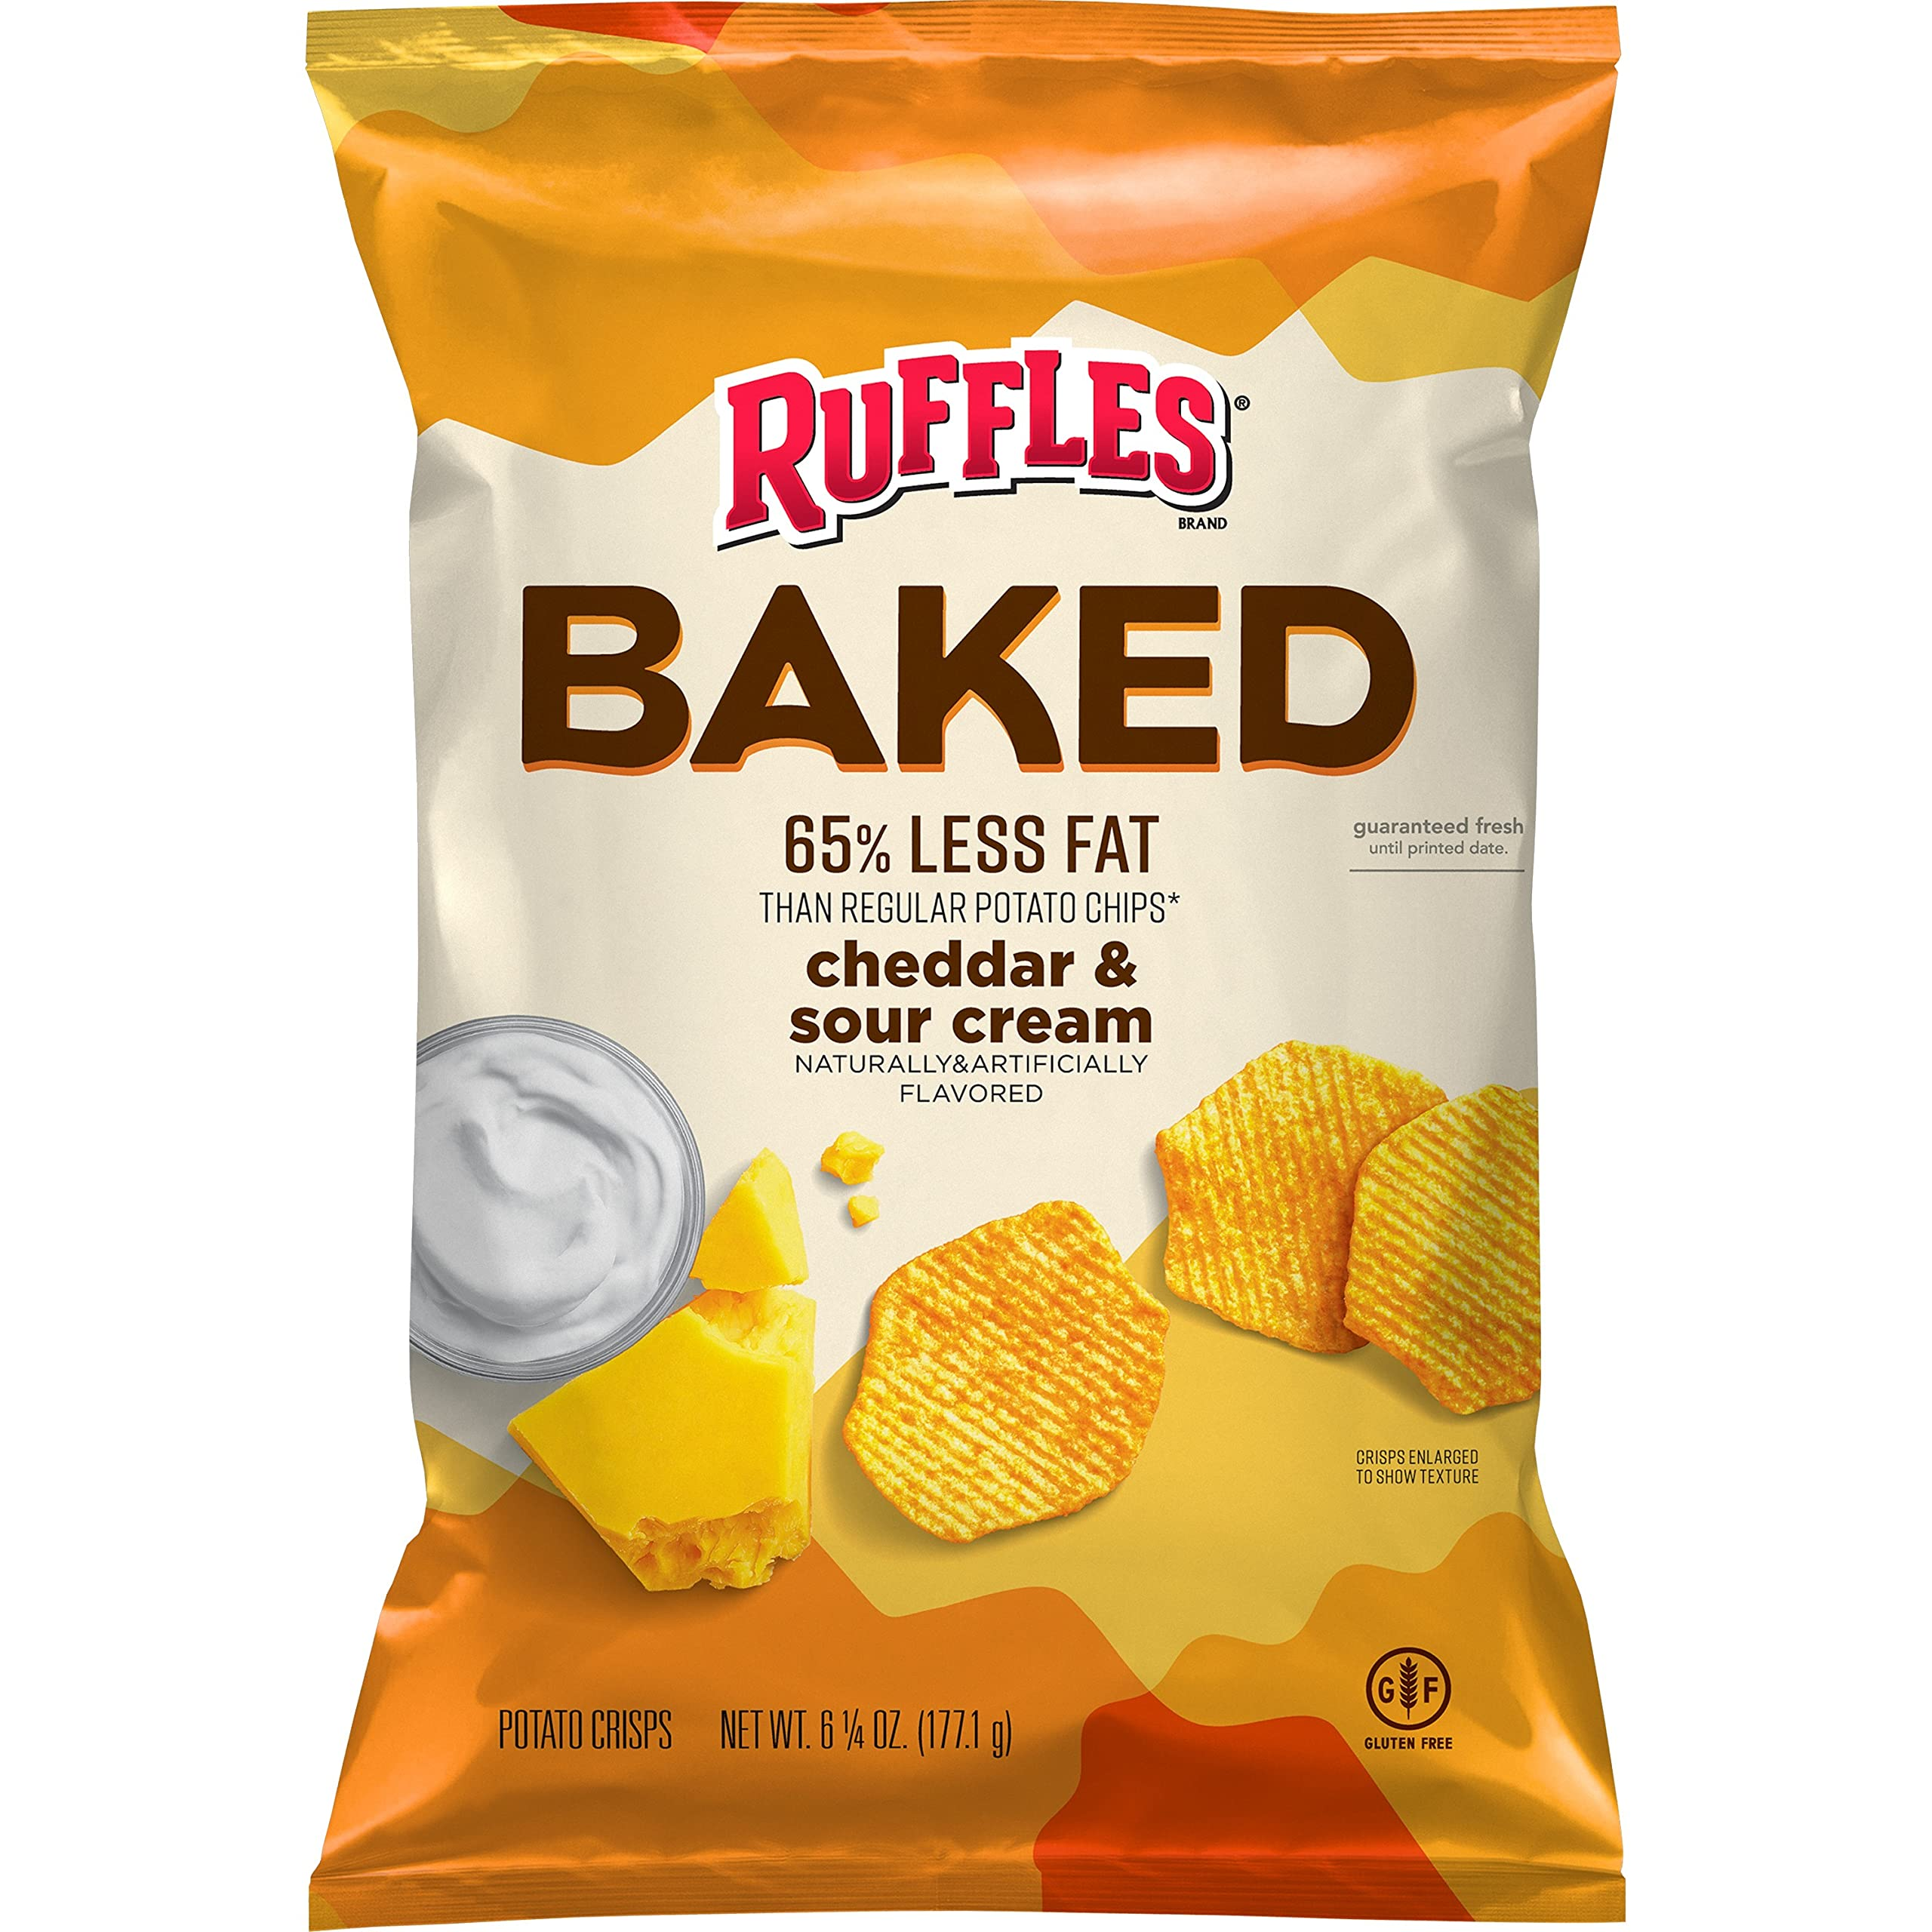 Baked Oven Baked Ruffles Cheddar Sour Cream, 6.25 Ounce